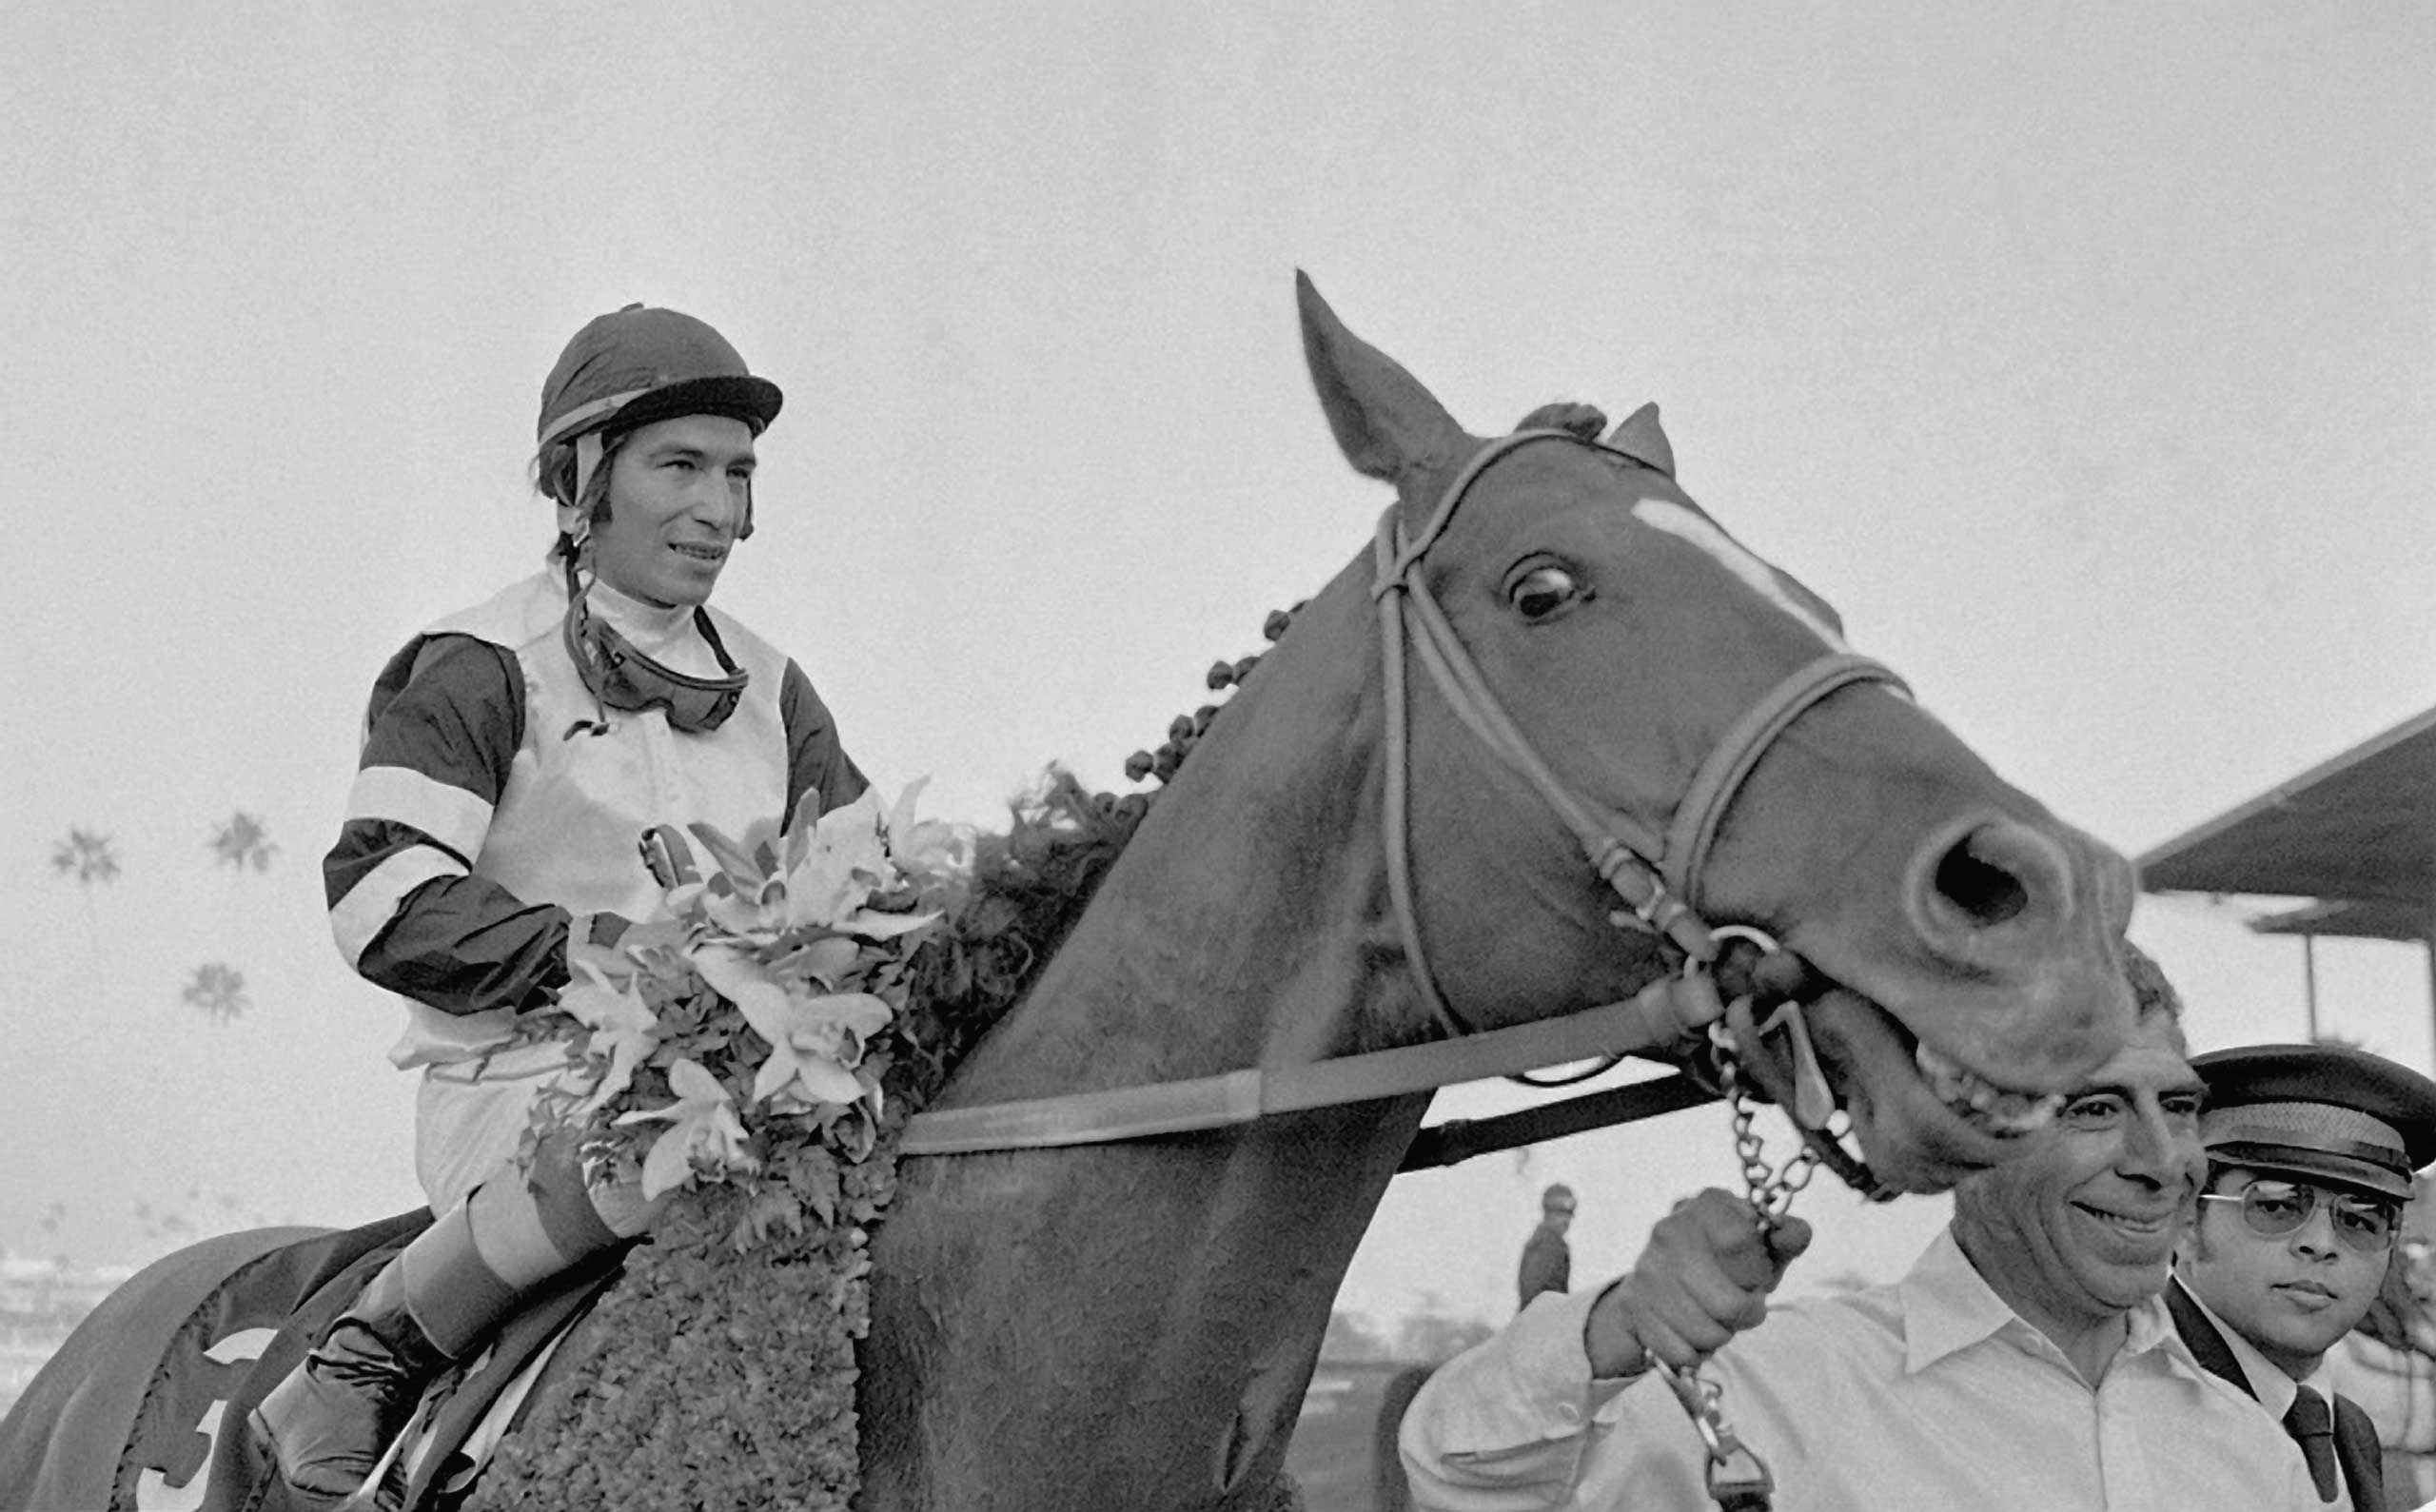 1979: Affirmed with jockey Laffit Pincay